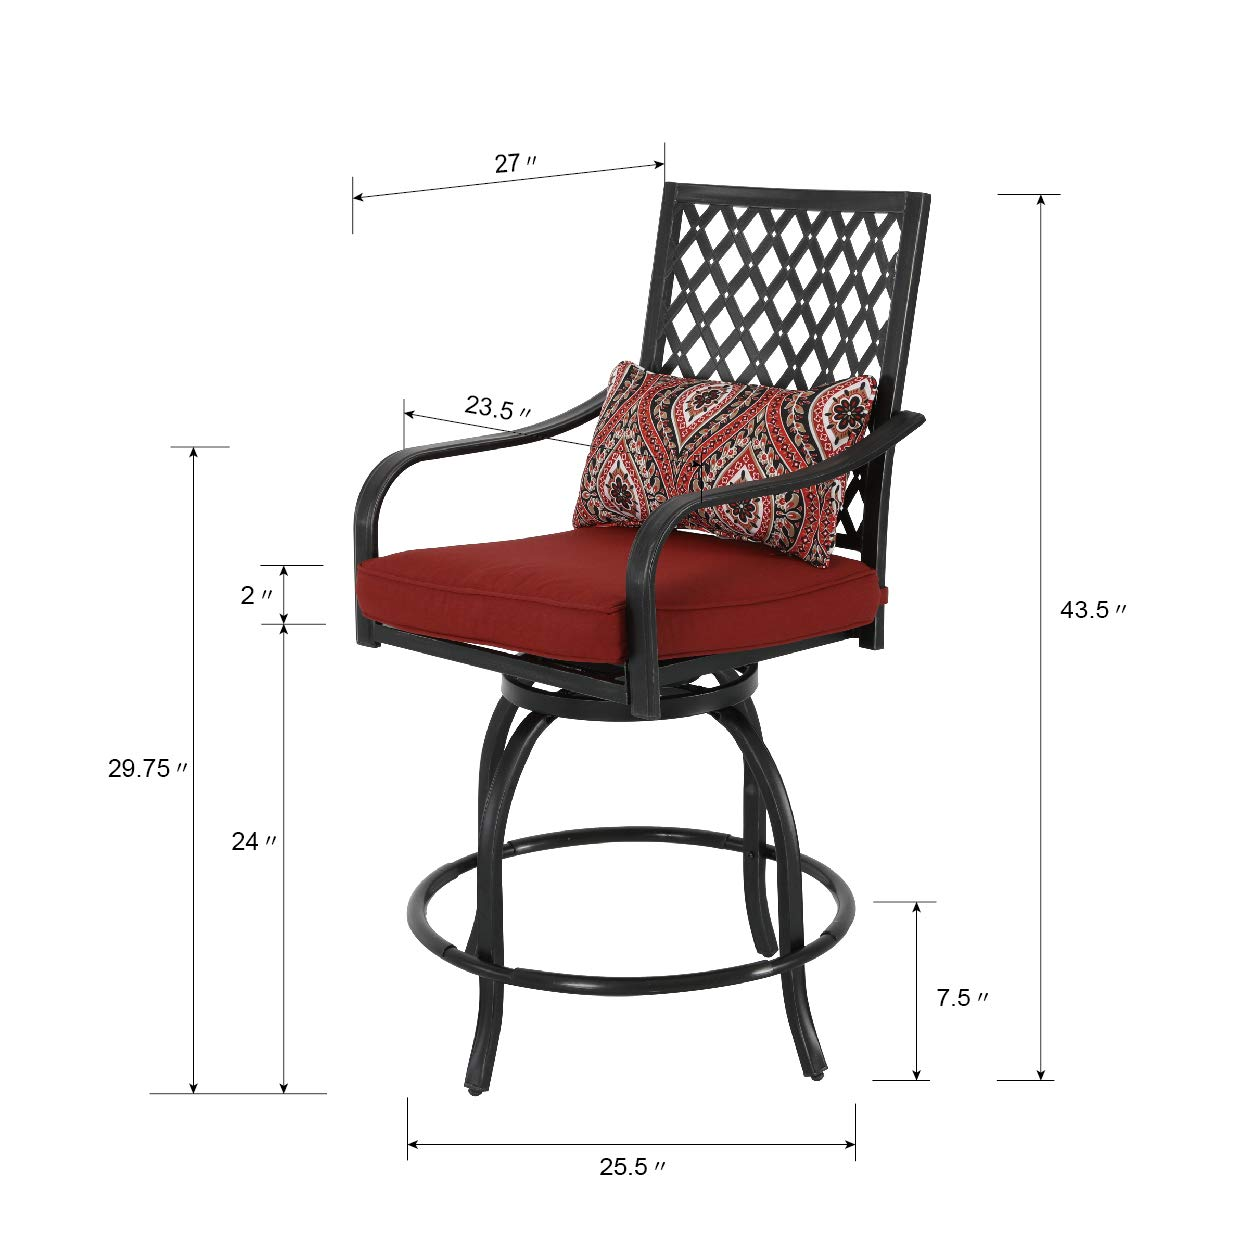 Patio Time 360 Degree Rotation Swivel Bar Stools Outdoor Furniture with Pillow, Seat Cushion (Set of 2)